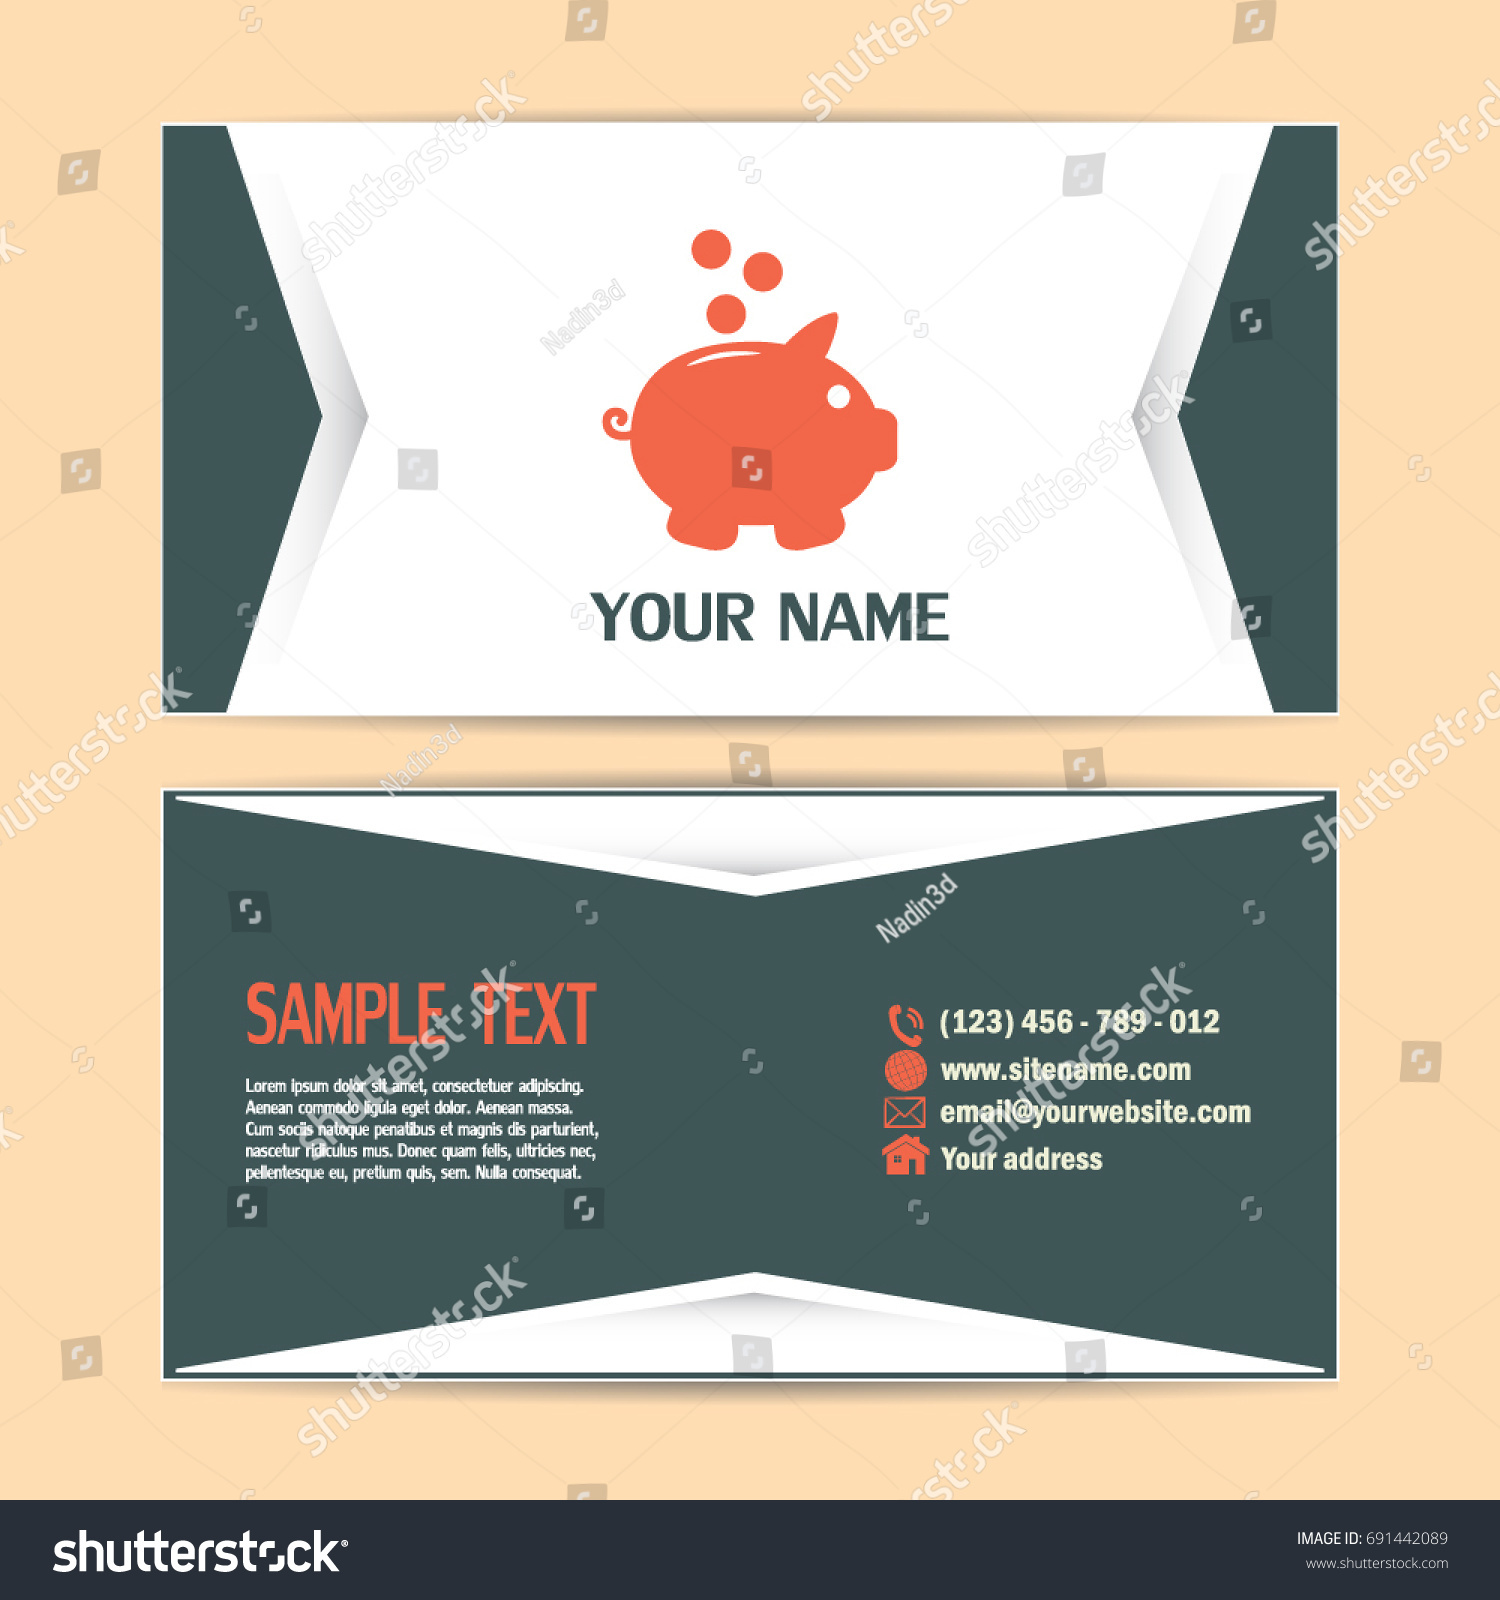 Beautiful Bank Business Cards Pictures Inspiration - Business Card ...